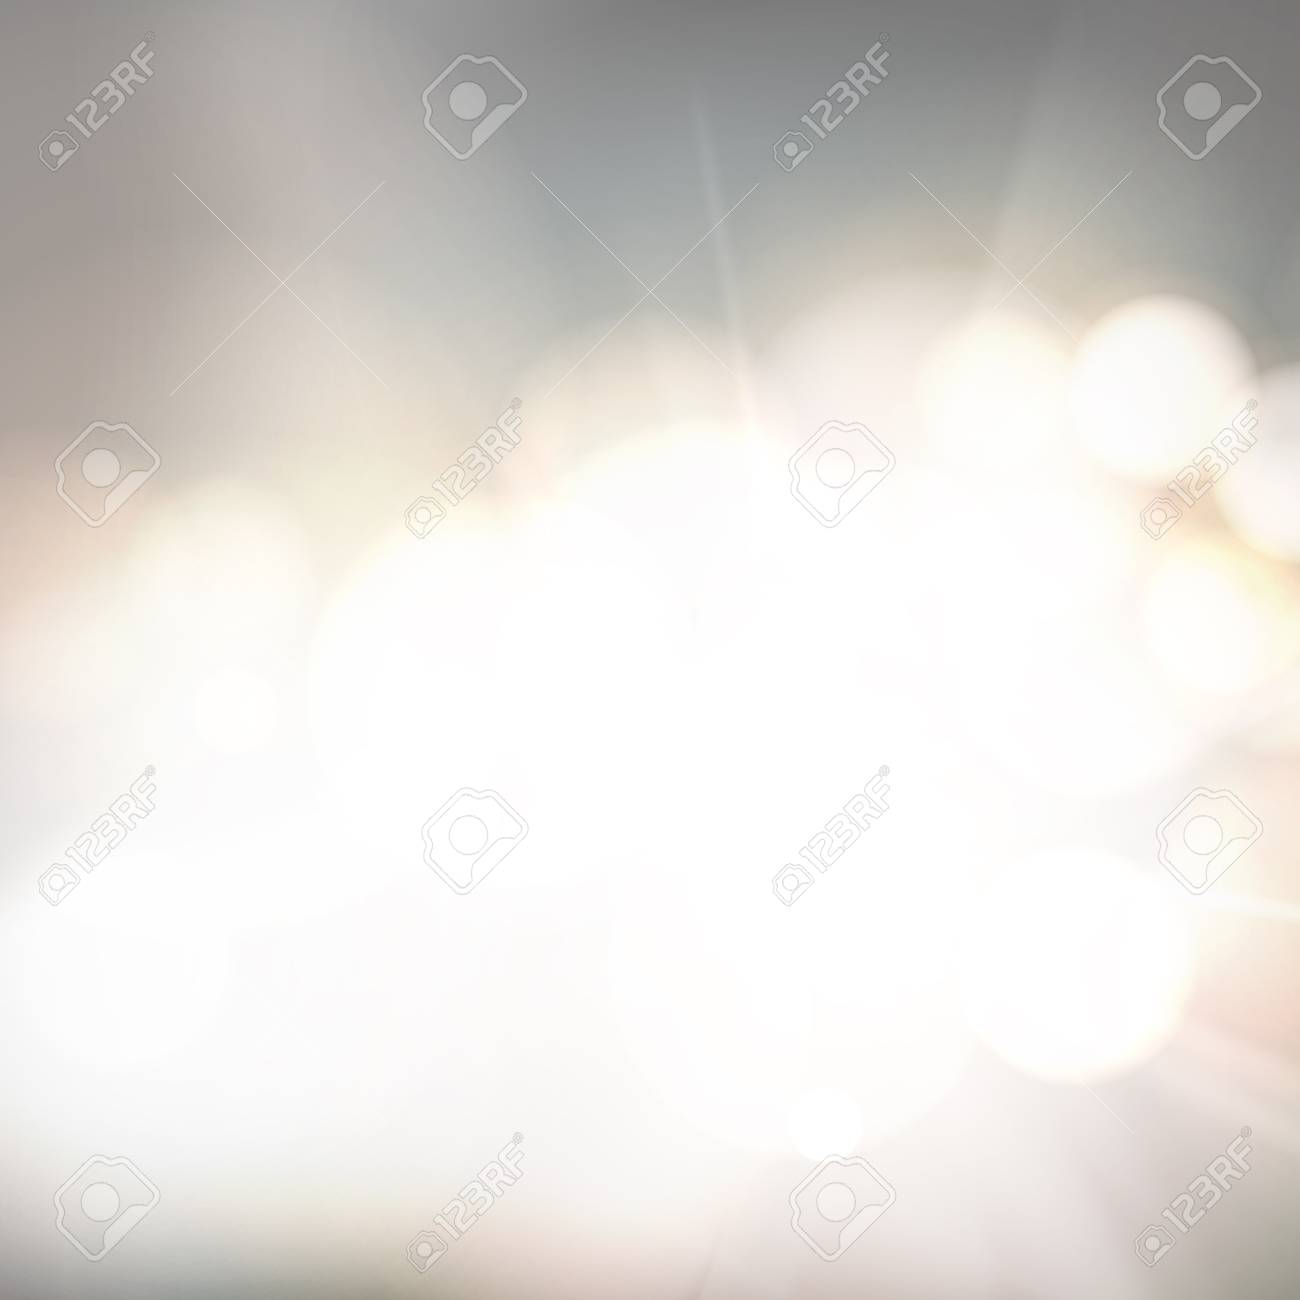 Soft bokeh and lights. Abstract shining space futuristic background. Fasion golden background. Bokeh light circles over gray backdrop. Vector illustration. - 125939629